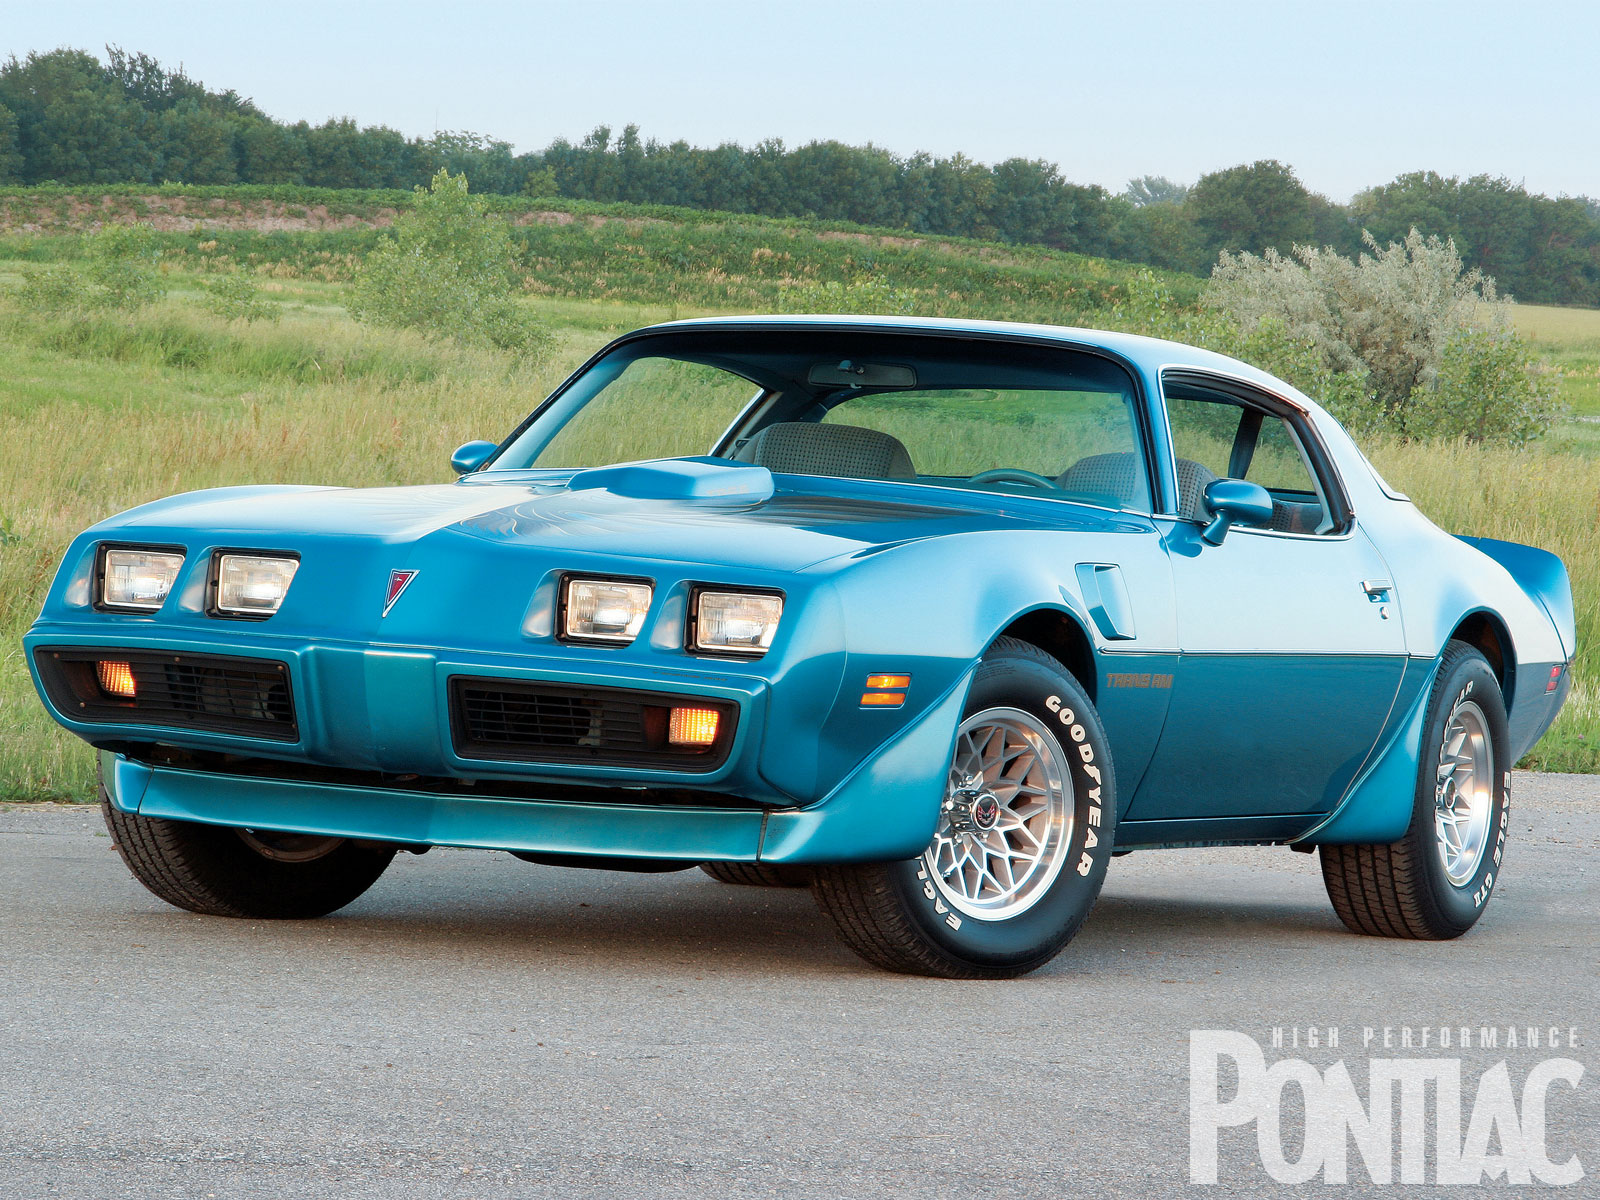 1979 Trans Am Picture 1979 Pontiac Trans Am Hot Rod Network